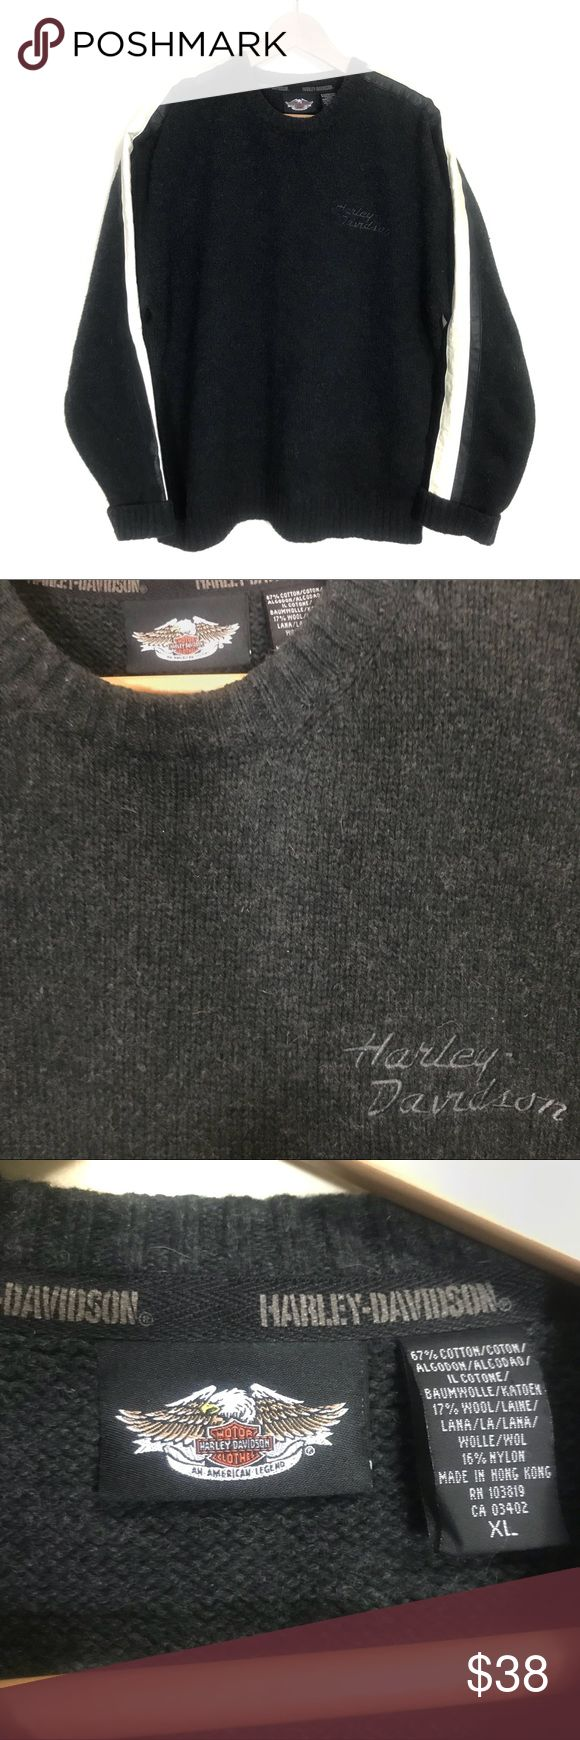 Harley Davidson-Motorcycles Sweater Vintage Men's Harley Davidson Motorcycles wool long sleeve sweater, dark grey. Cream and brown on sleeves, Harley Davidson stitching on left chest. Size XL, excellent pre-owned condition! Offers and bundles welcomed! Have a blessed day! Harley-Davidson Sweaters Crewneck #vintagemotorcycles